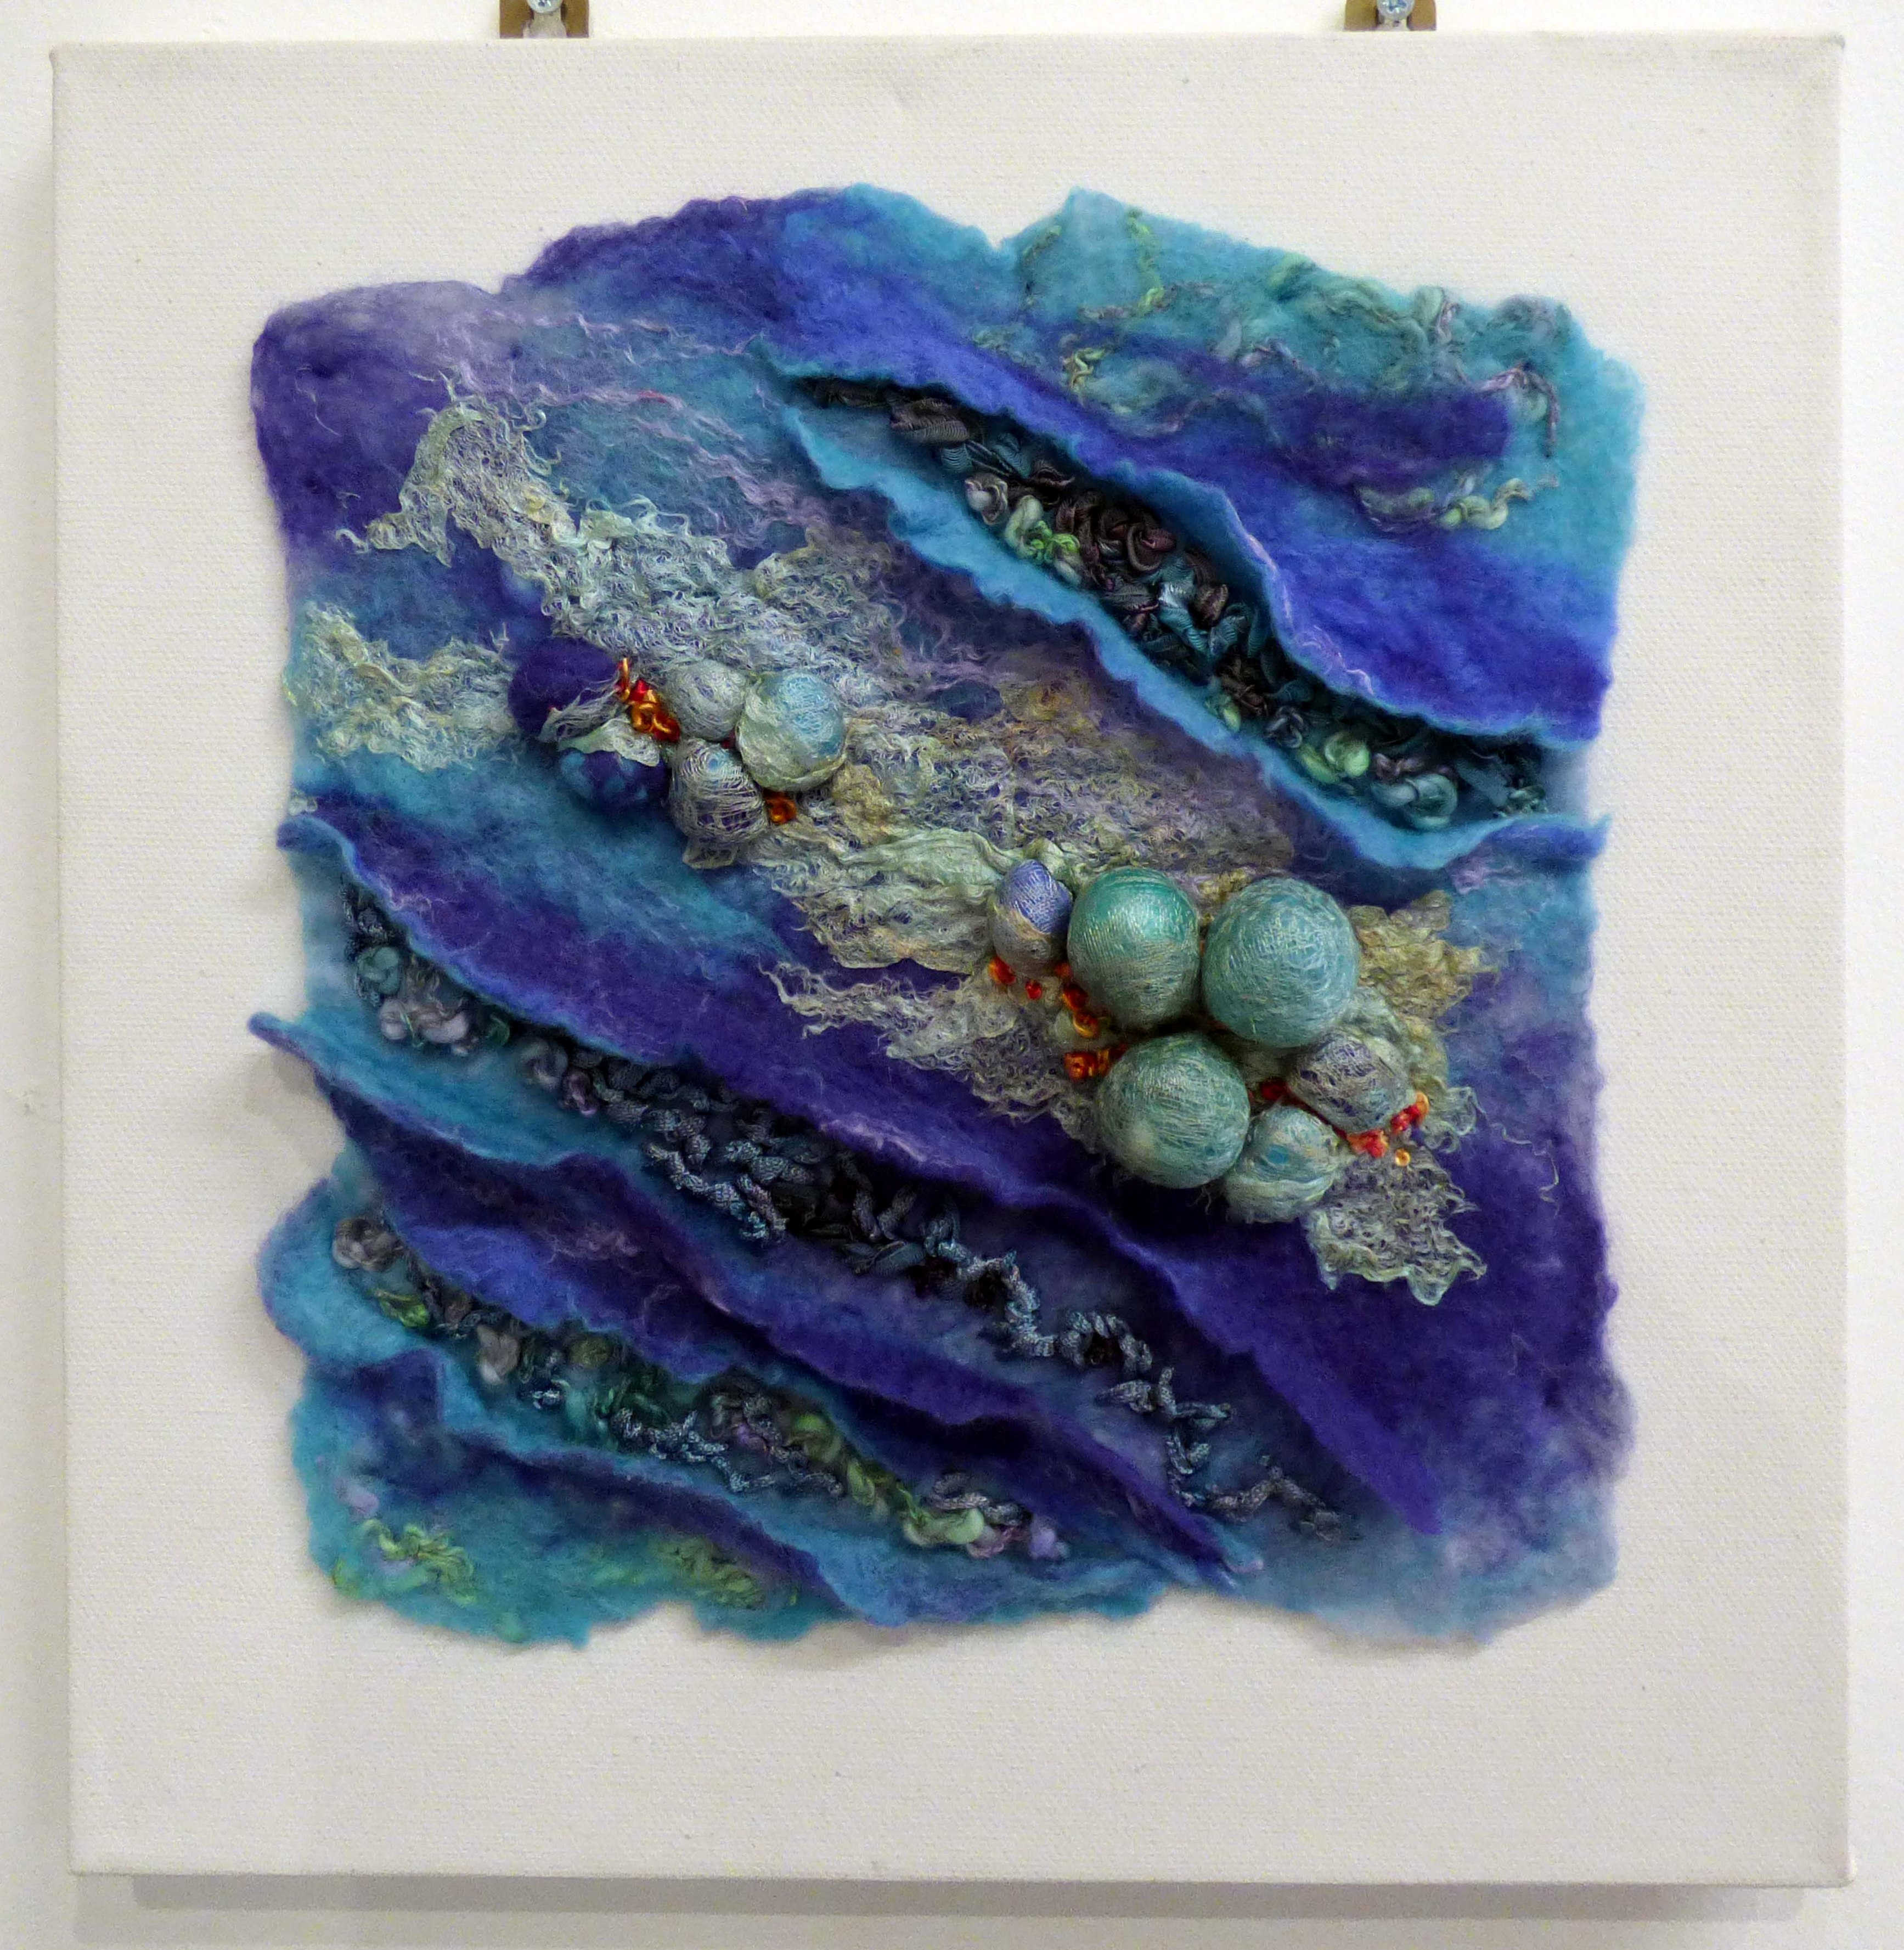 BLUE GLASS by Pat Bean, Natural Progression Group, July 2021